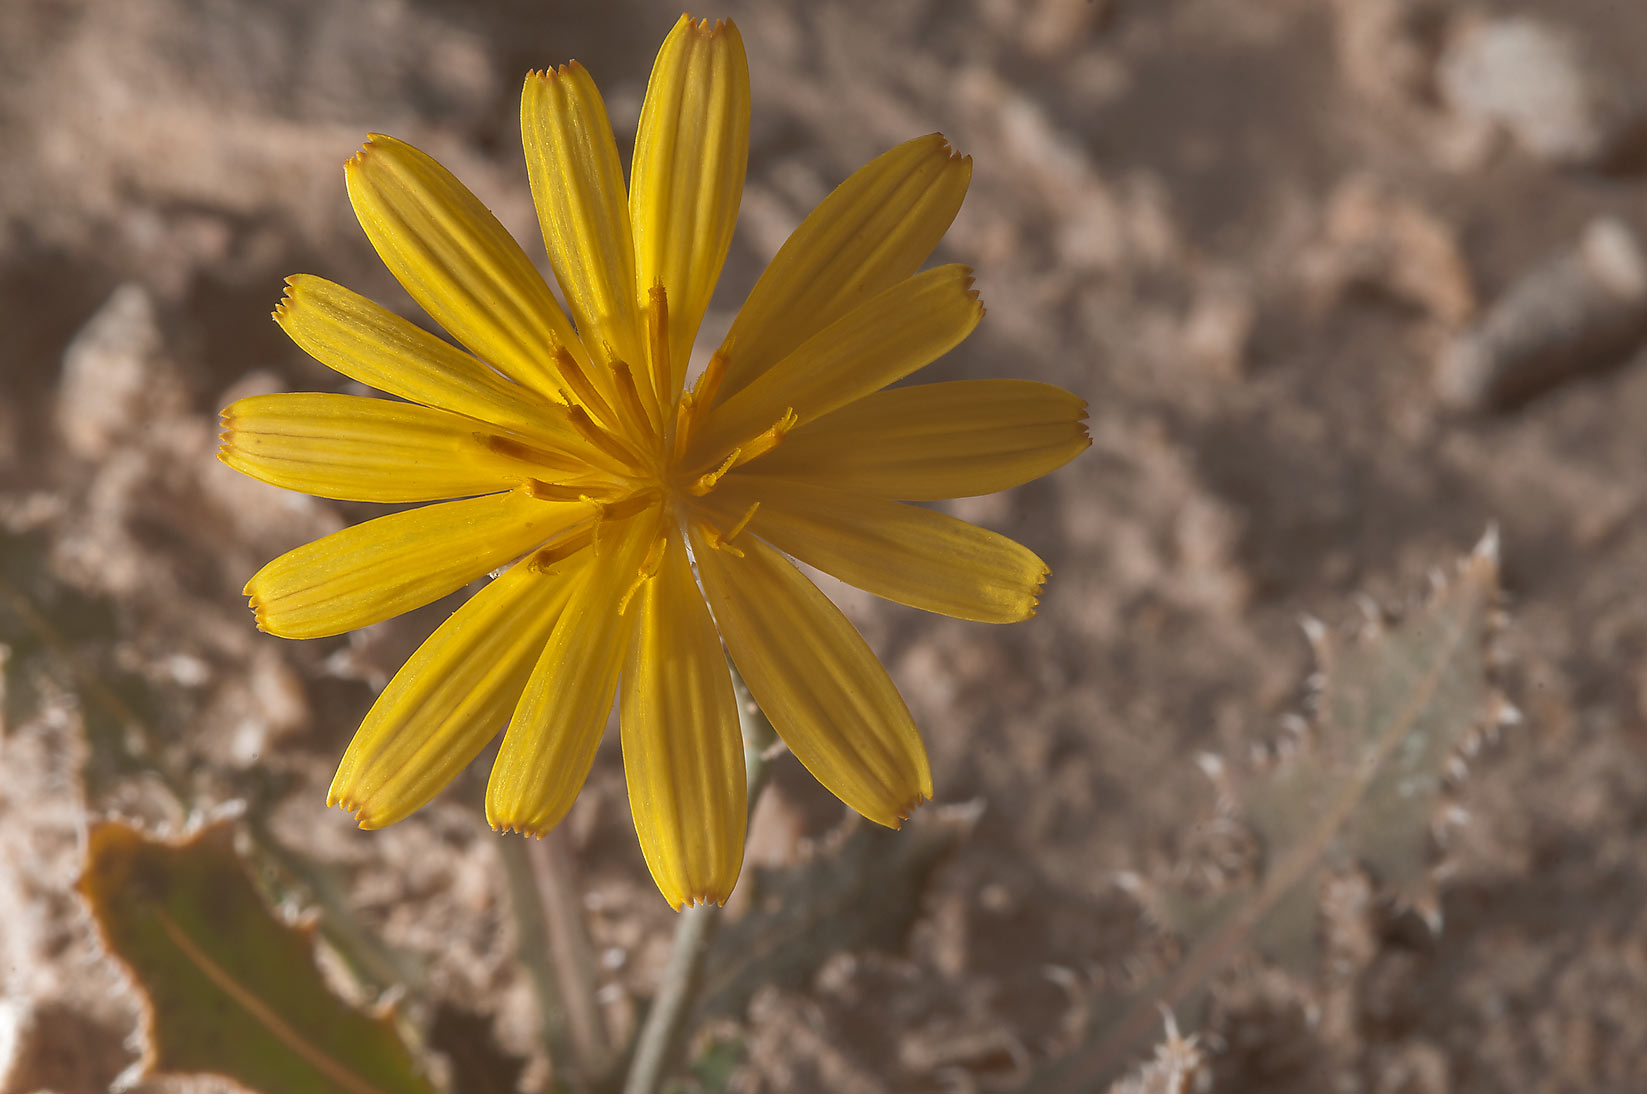 Dandelion like flower of Launaea mucronata (local...of Ras Laffan, north from Doha. Qatar